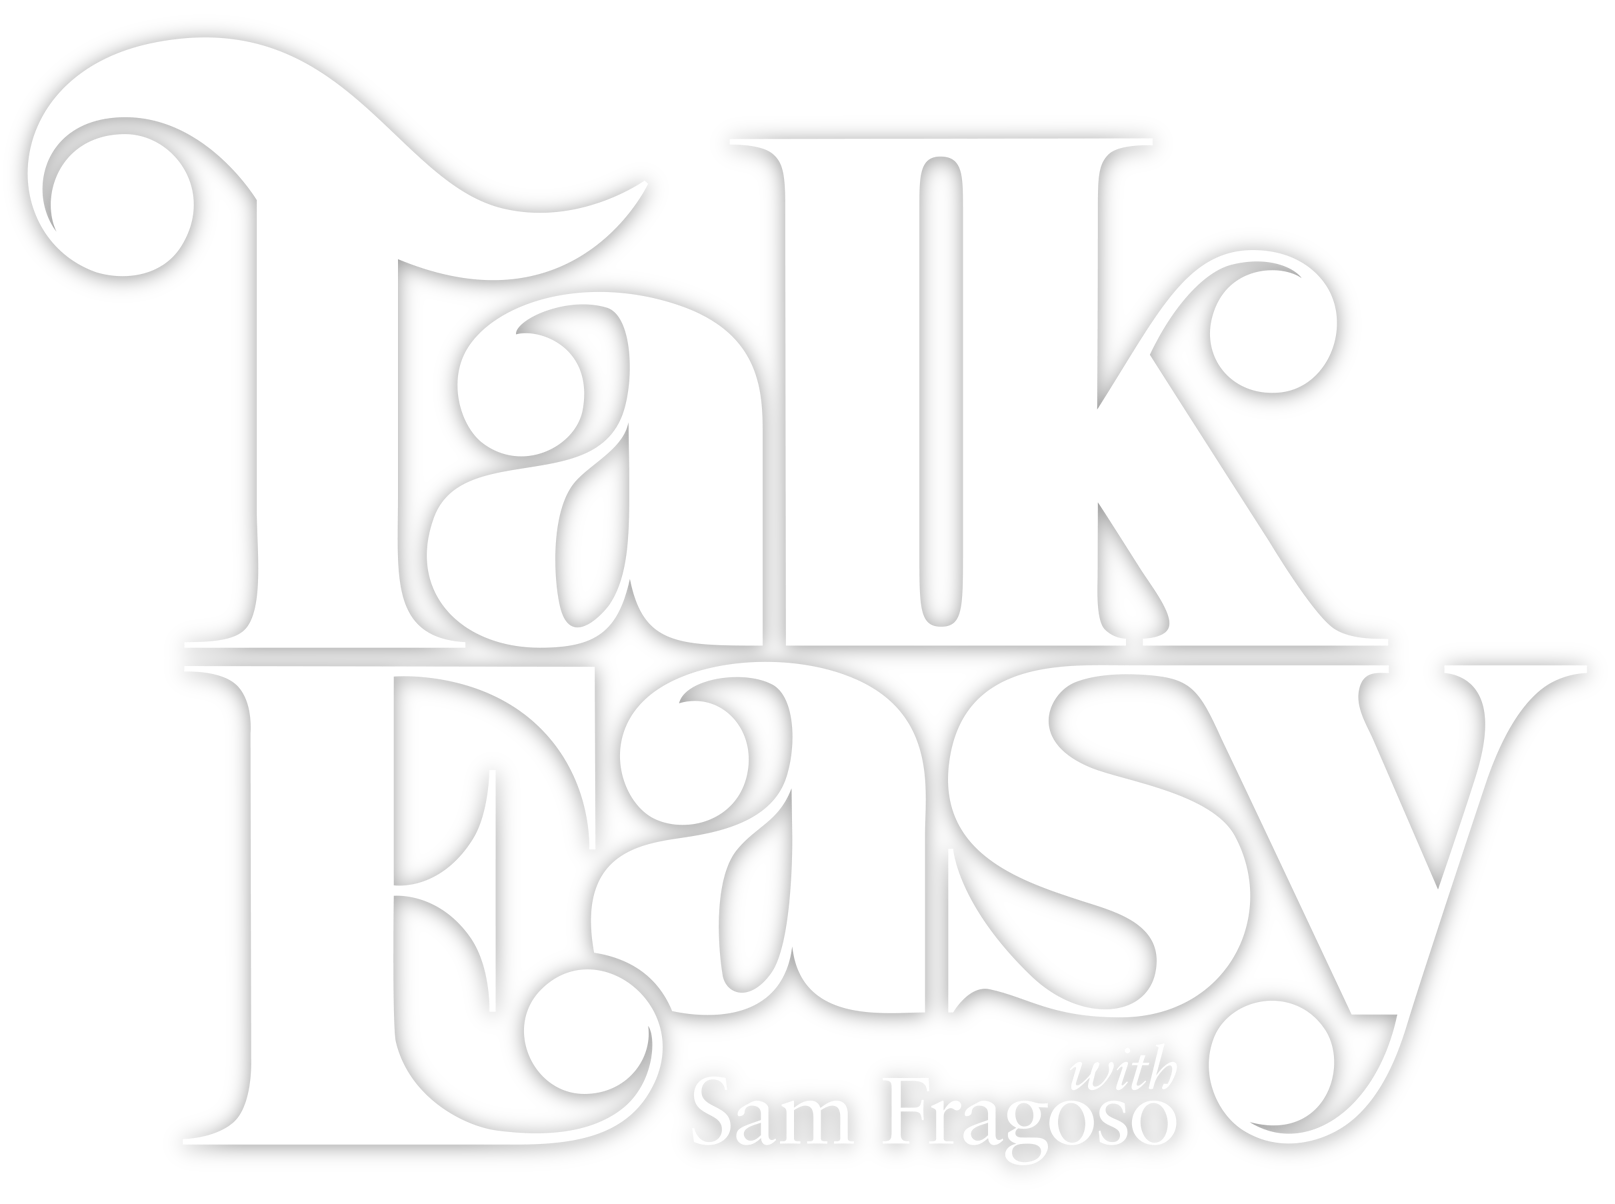 Talk Easy with Sam Fragoso